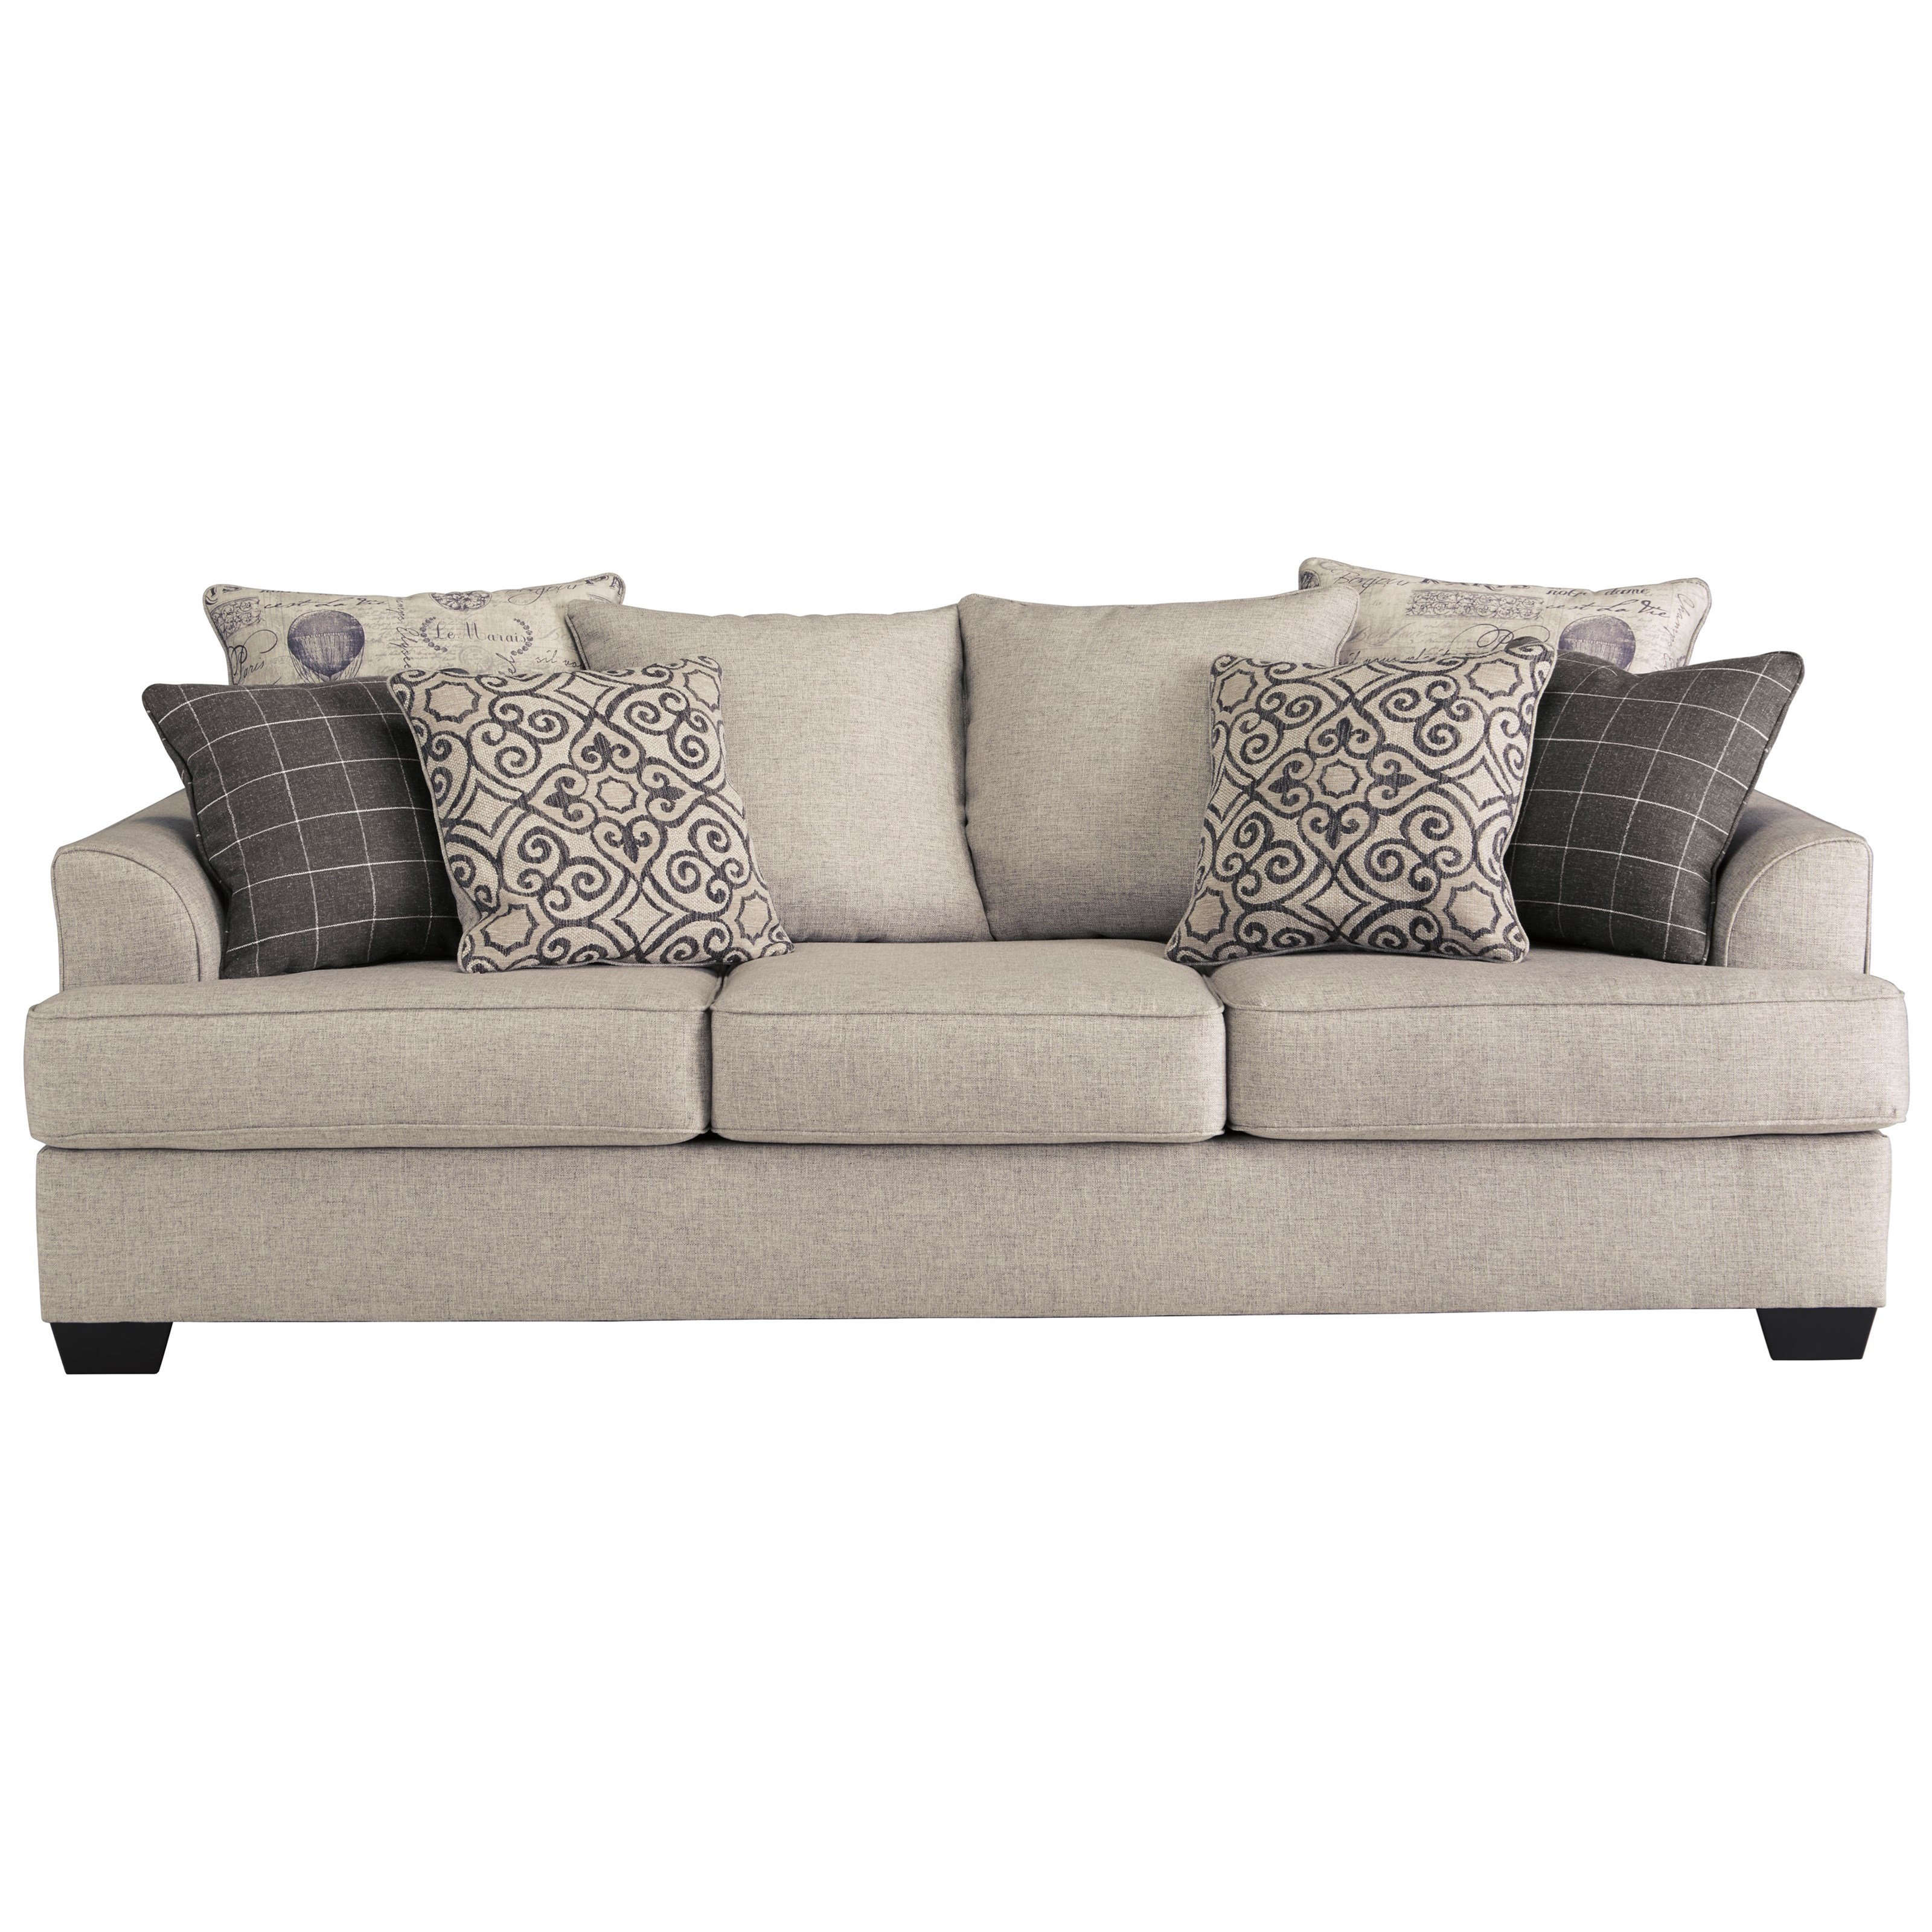 Velletri Queen Sofa Sleeper by Signature Design by Ashley at Suburban Furniture